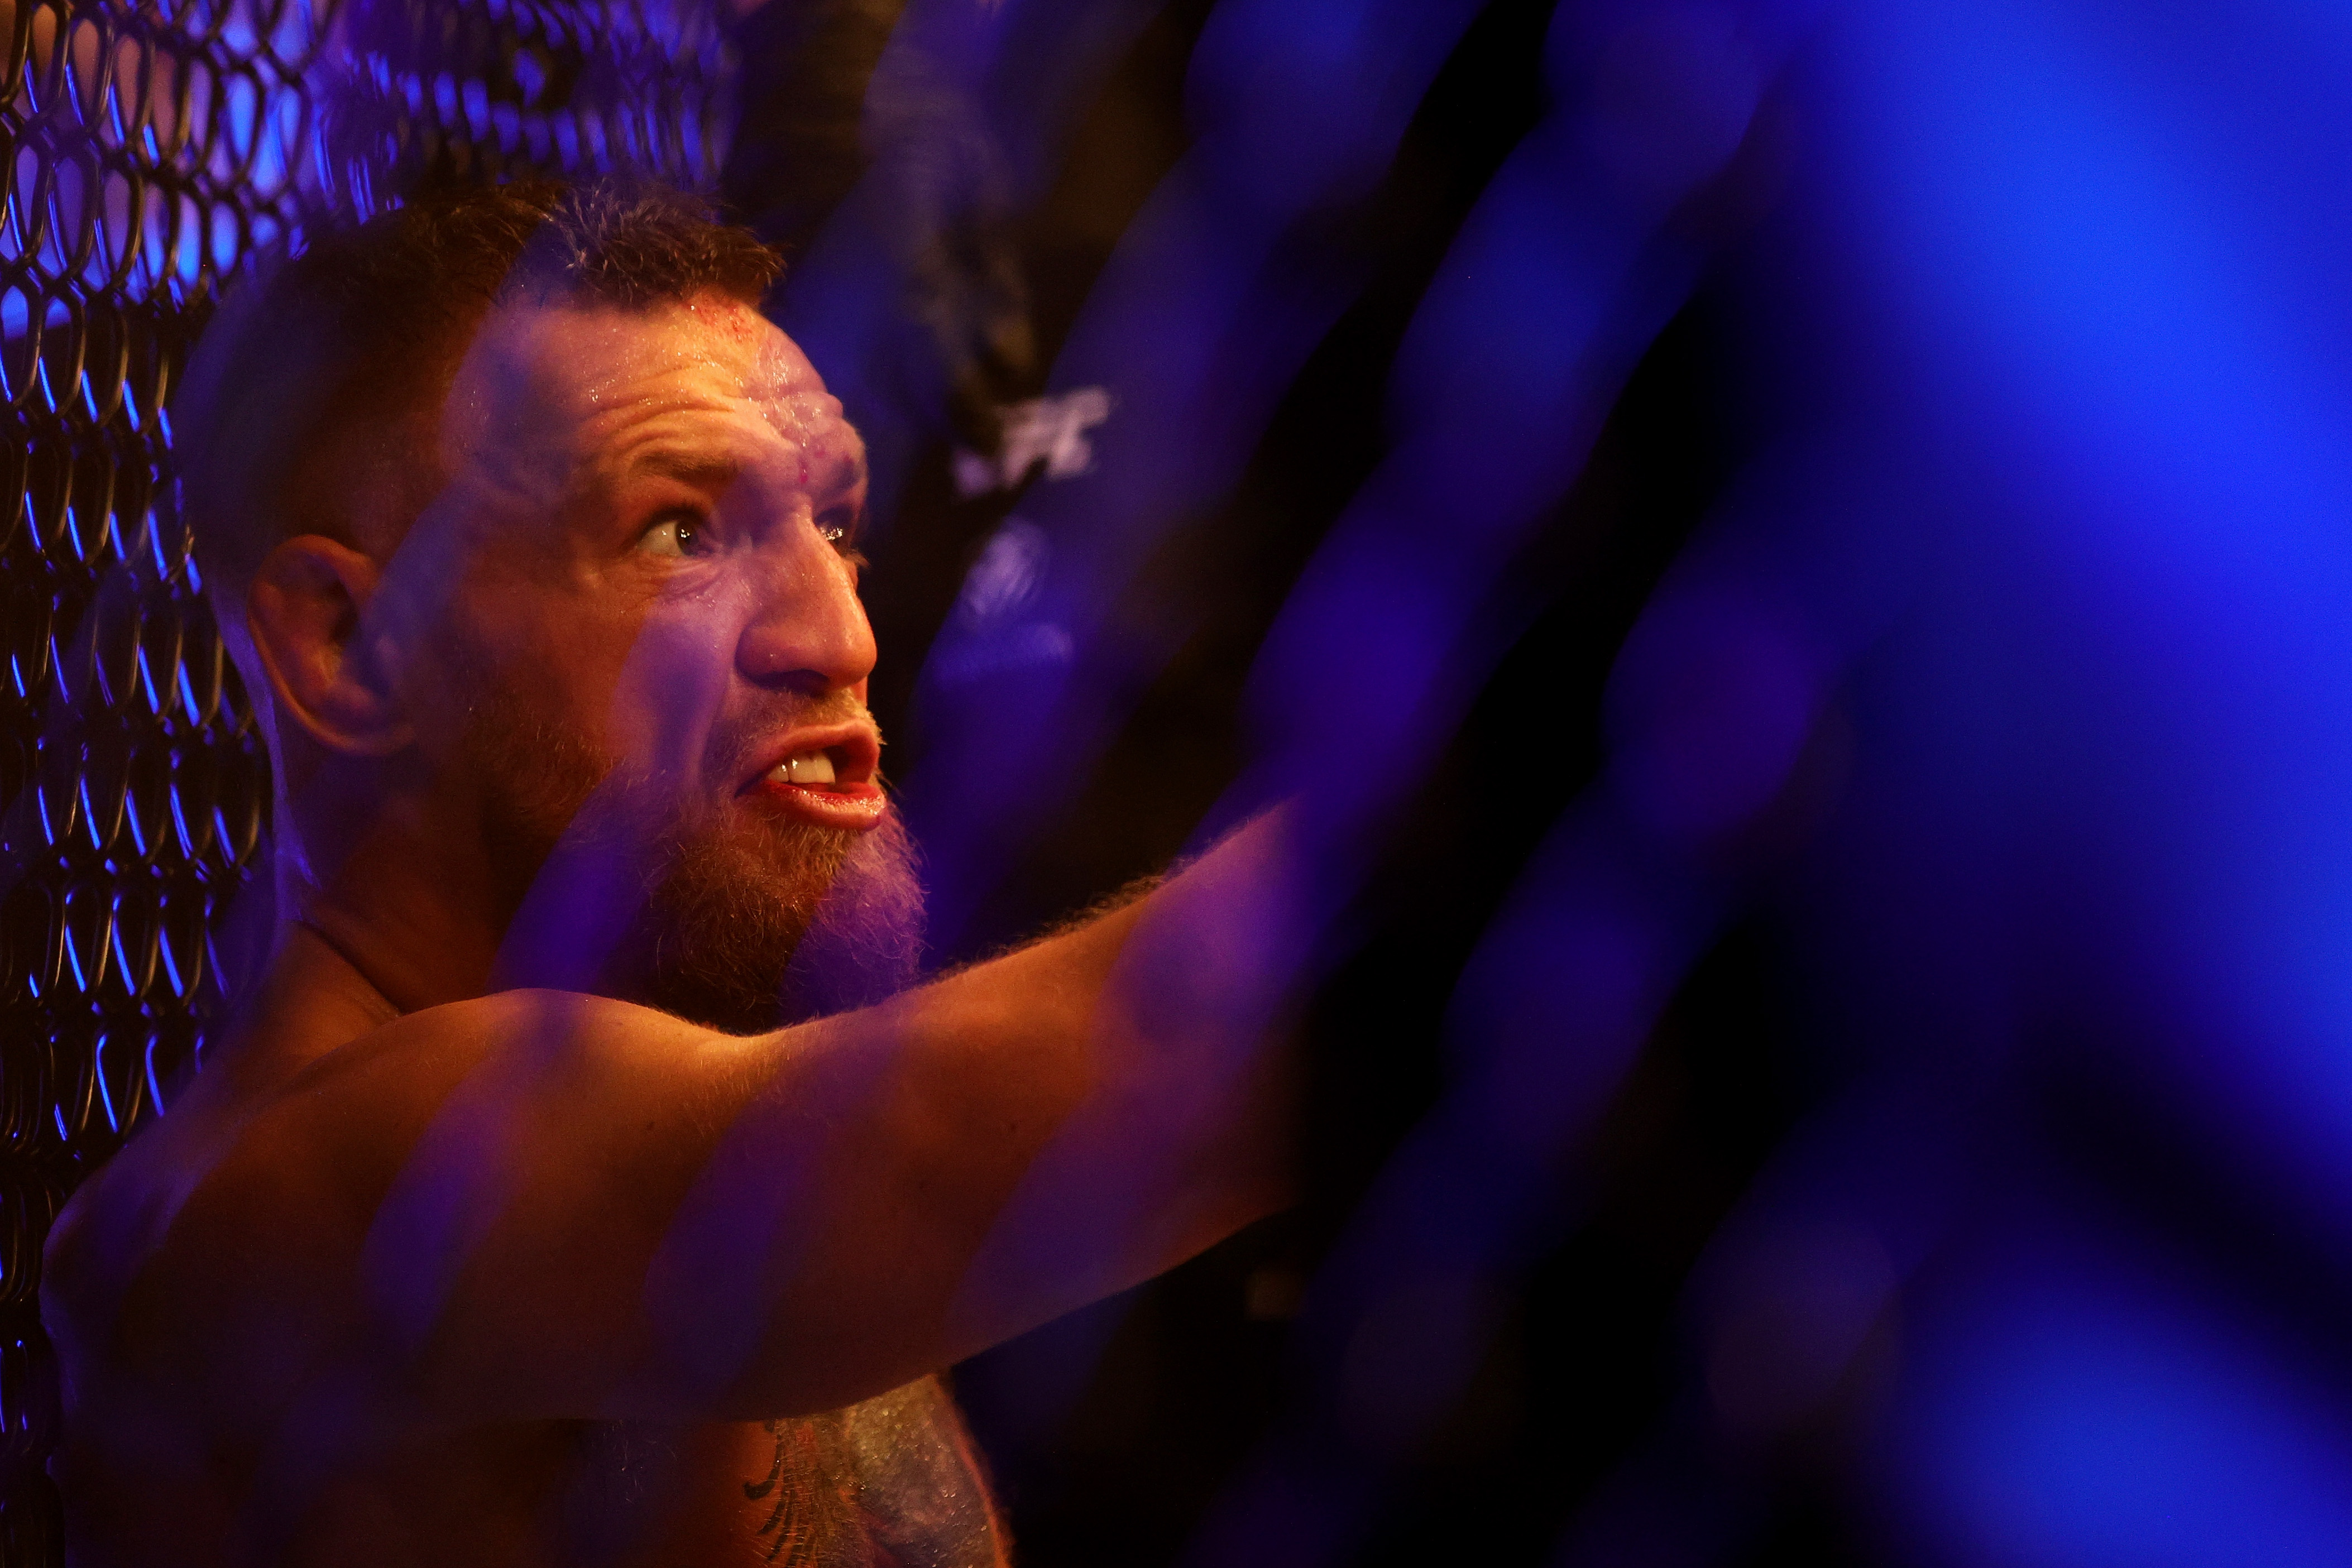 Conor McGregor berates Dustin Poirier after injuring his ankle at UFC 264 in Vegas.